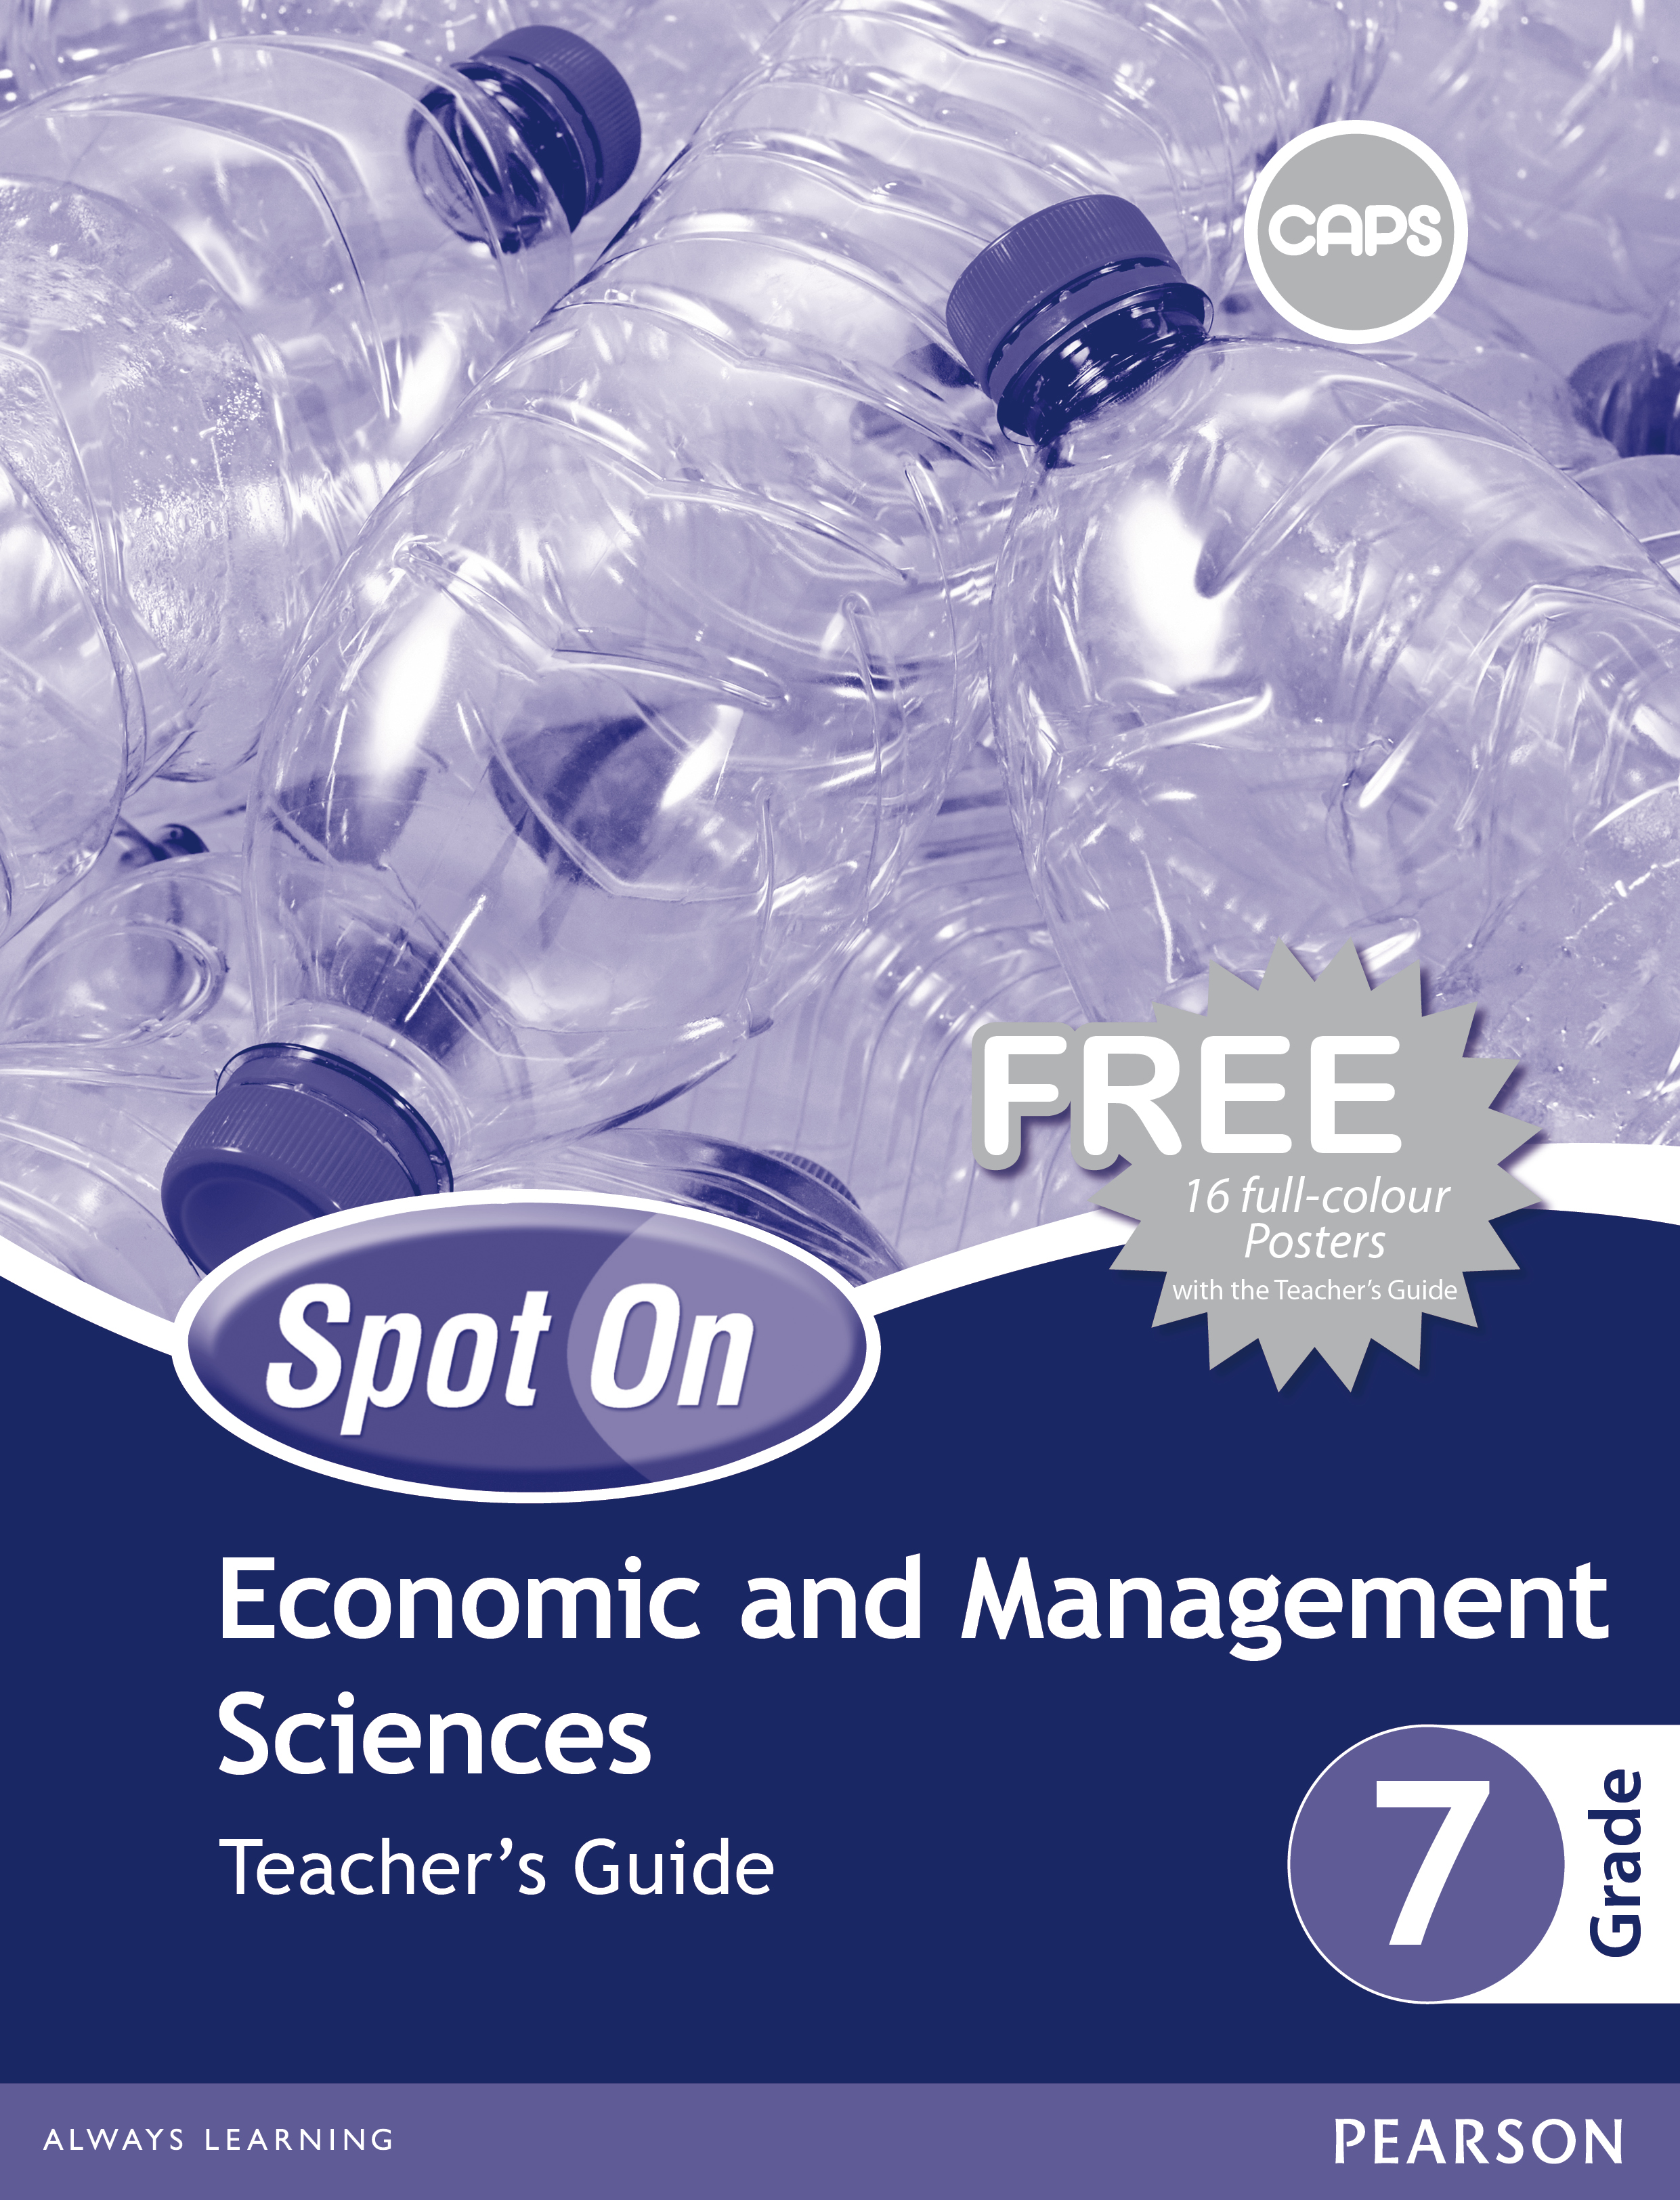 Spot On Economic and Management Sciences: Grade 7: Teacher's Guide and Free Poster Pack